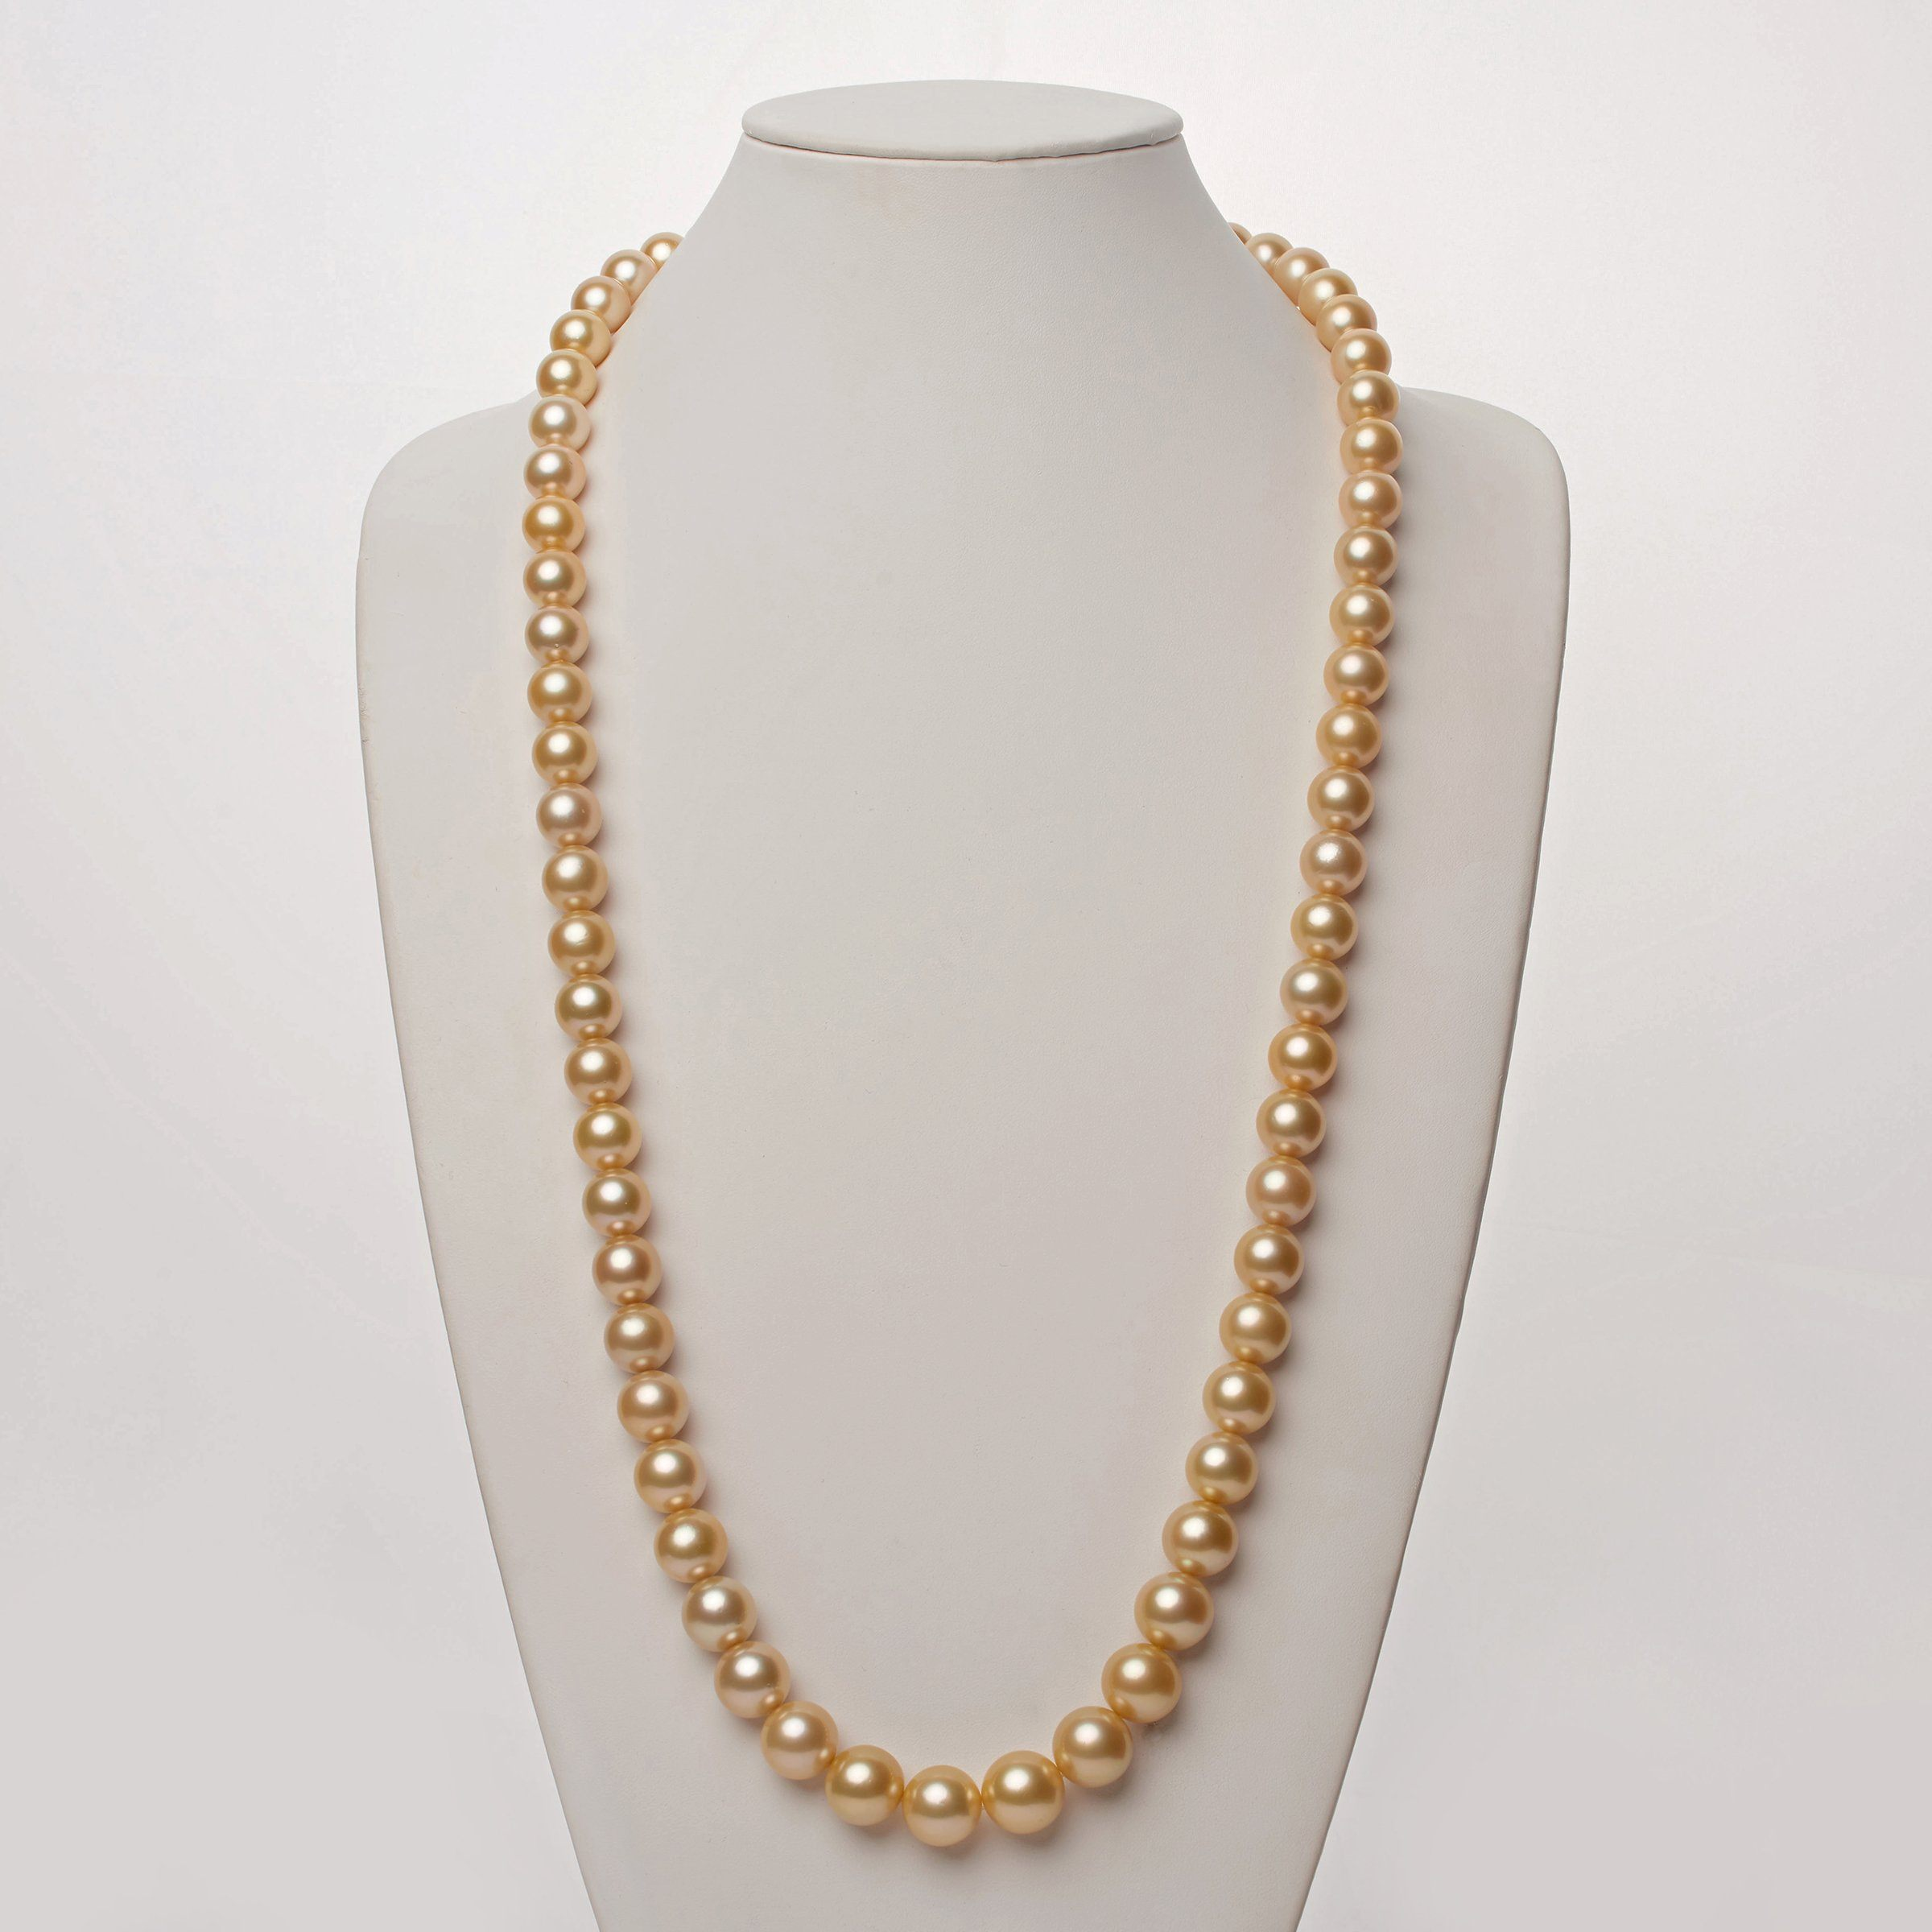 11.9-14.9 mm AAA Golden South Sea Round Pearl Necklace -  35 Inches